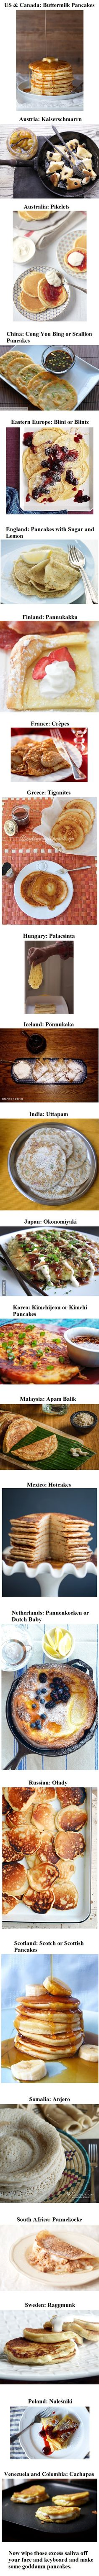 Pancakes from around the world.